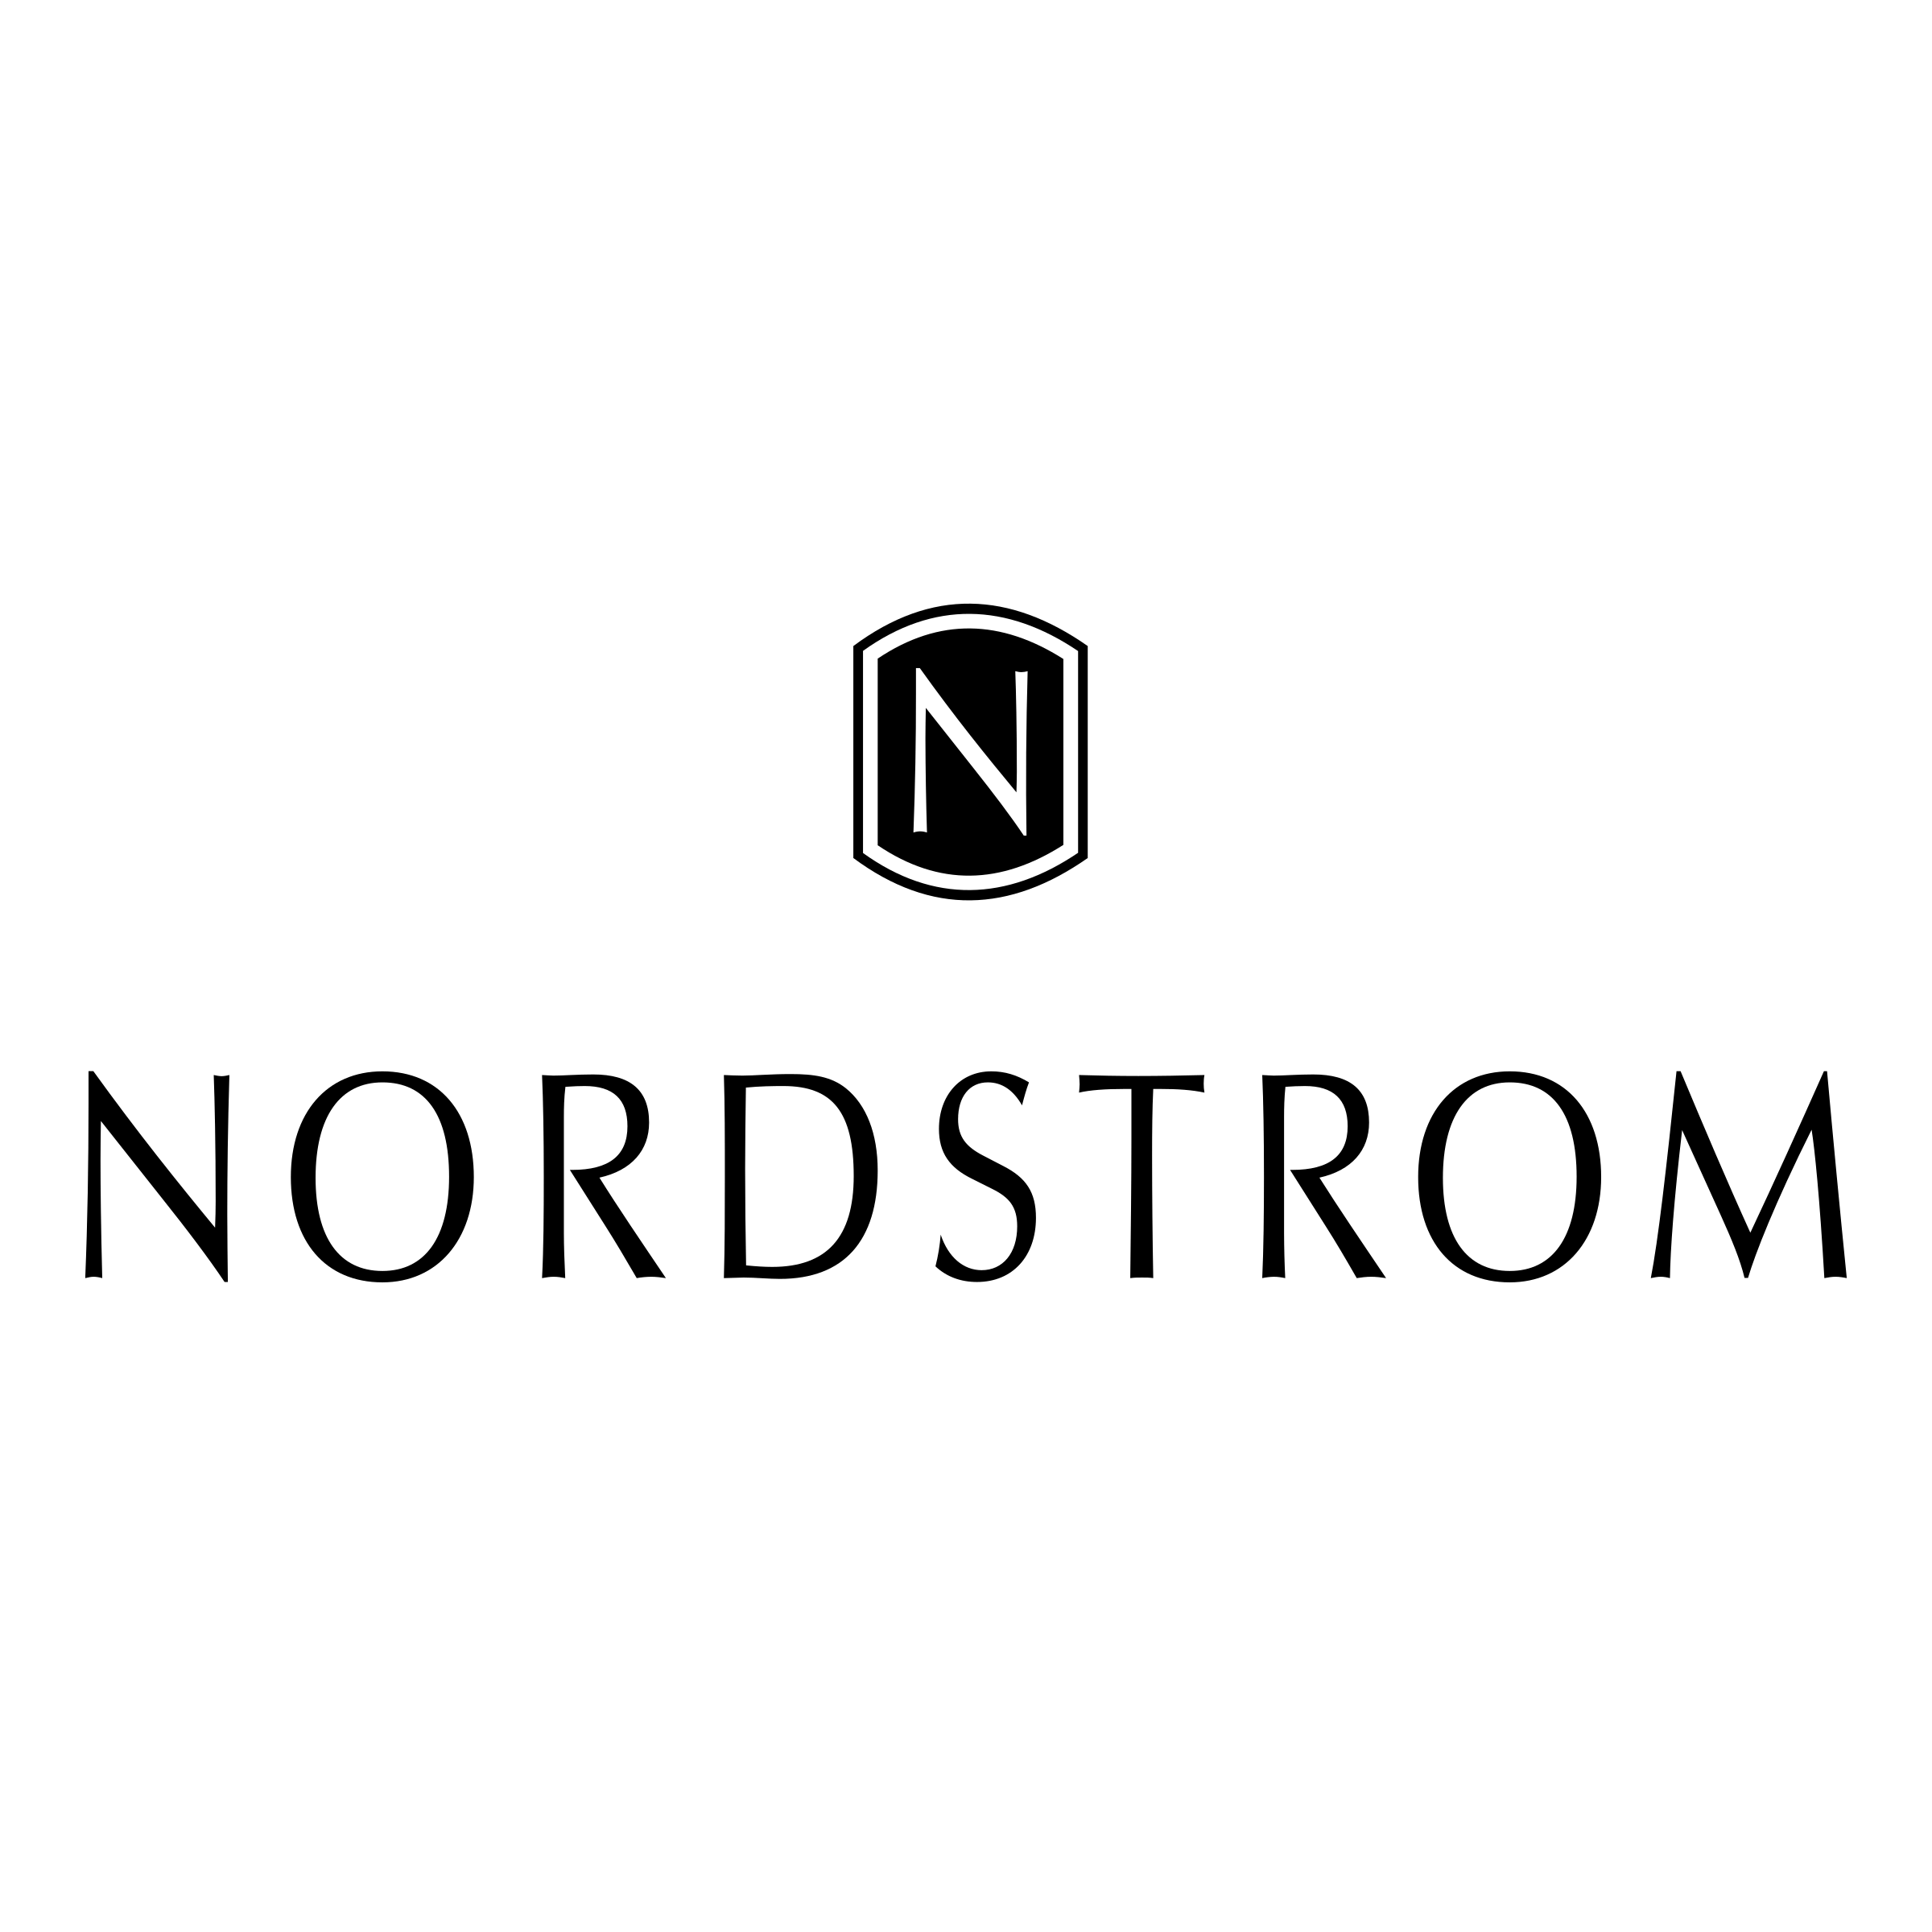 Nordstrom Logo - Nordstrom Logo PNG Transparent & SVG Vector - Freebie Supply